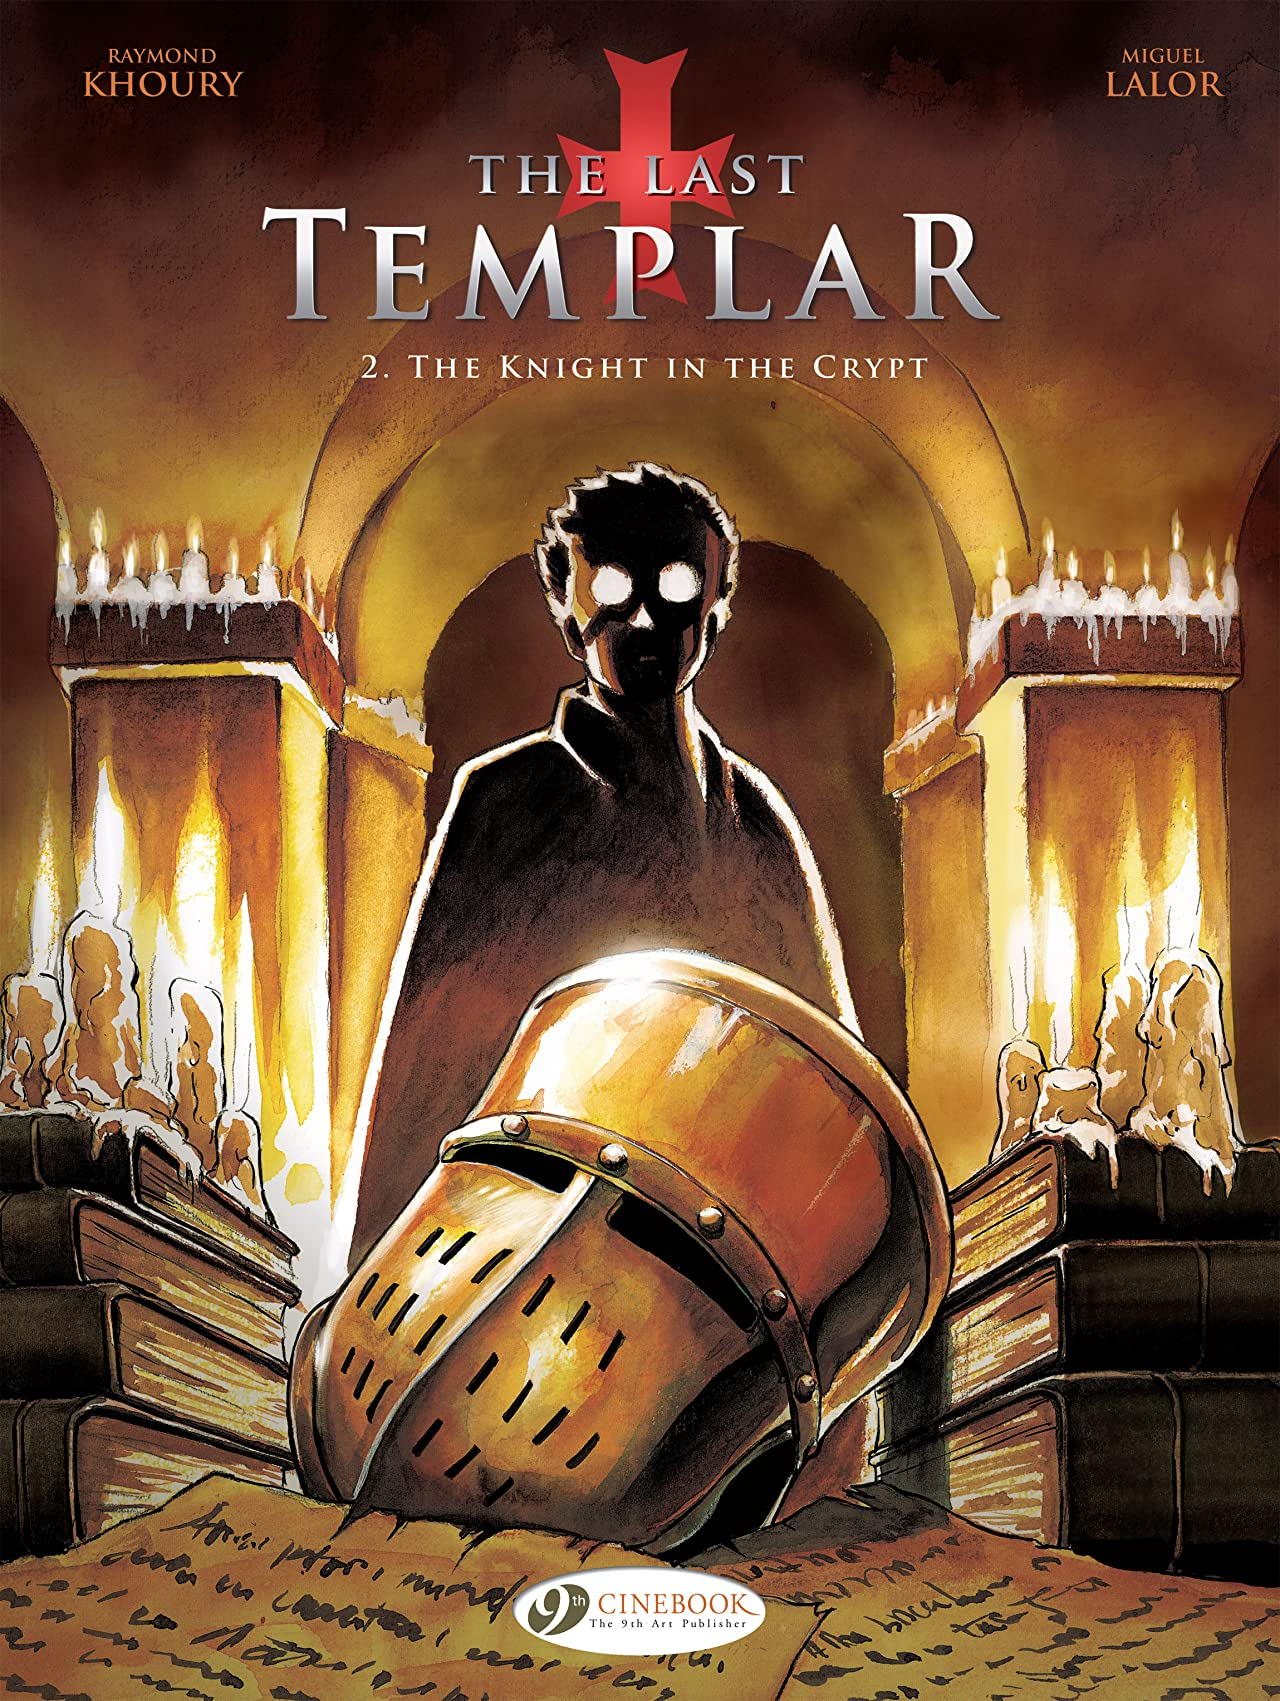 The Last Templar Vol. 2: The Knight in the Crypt